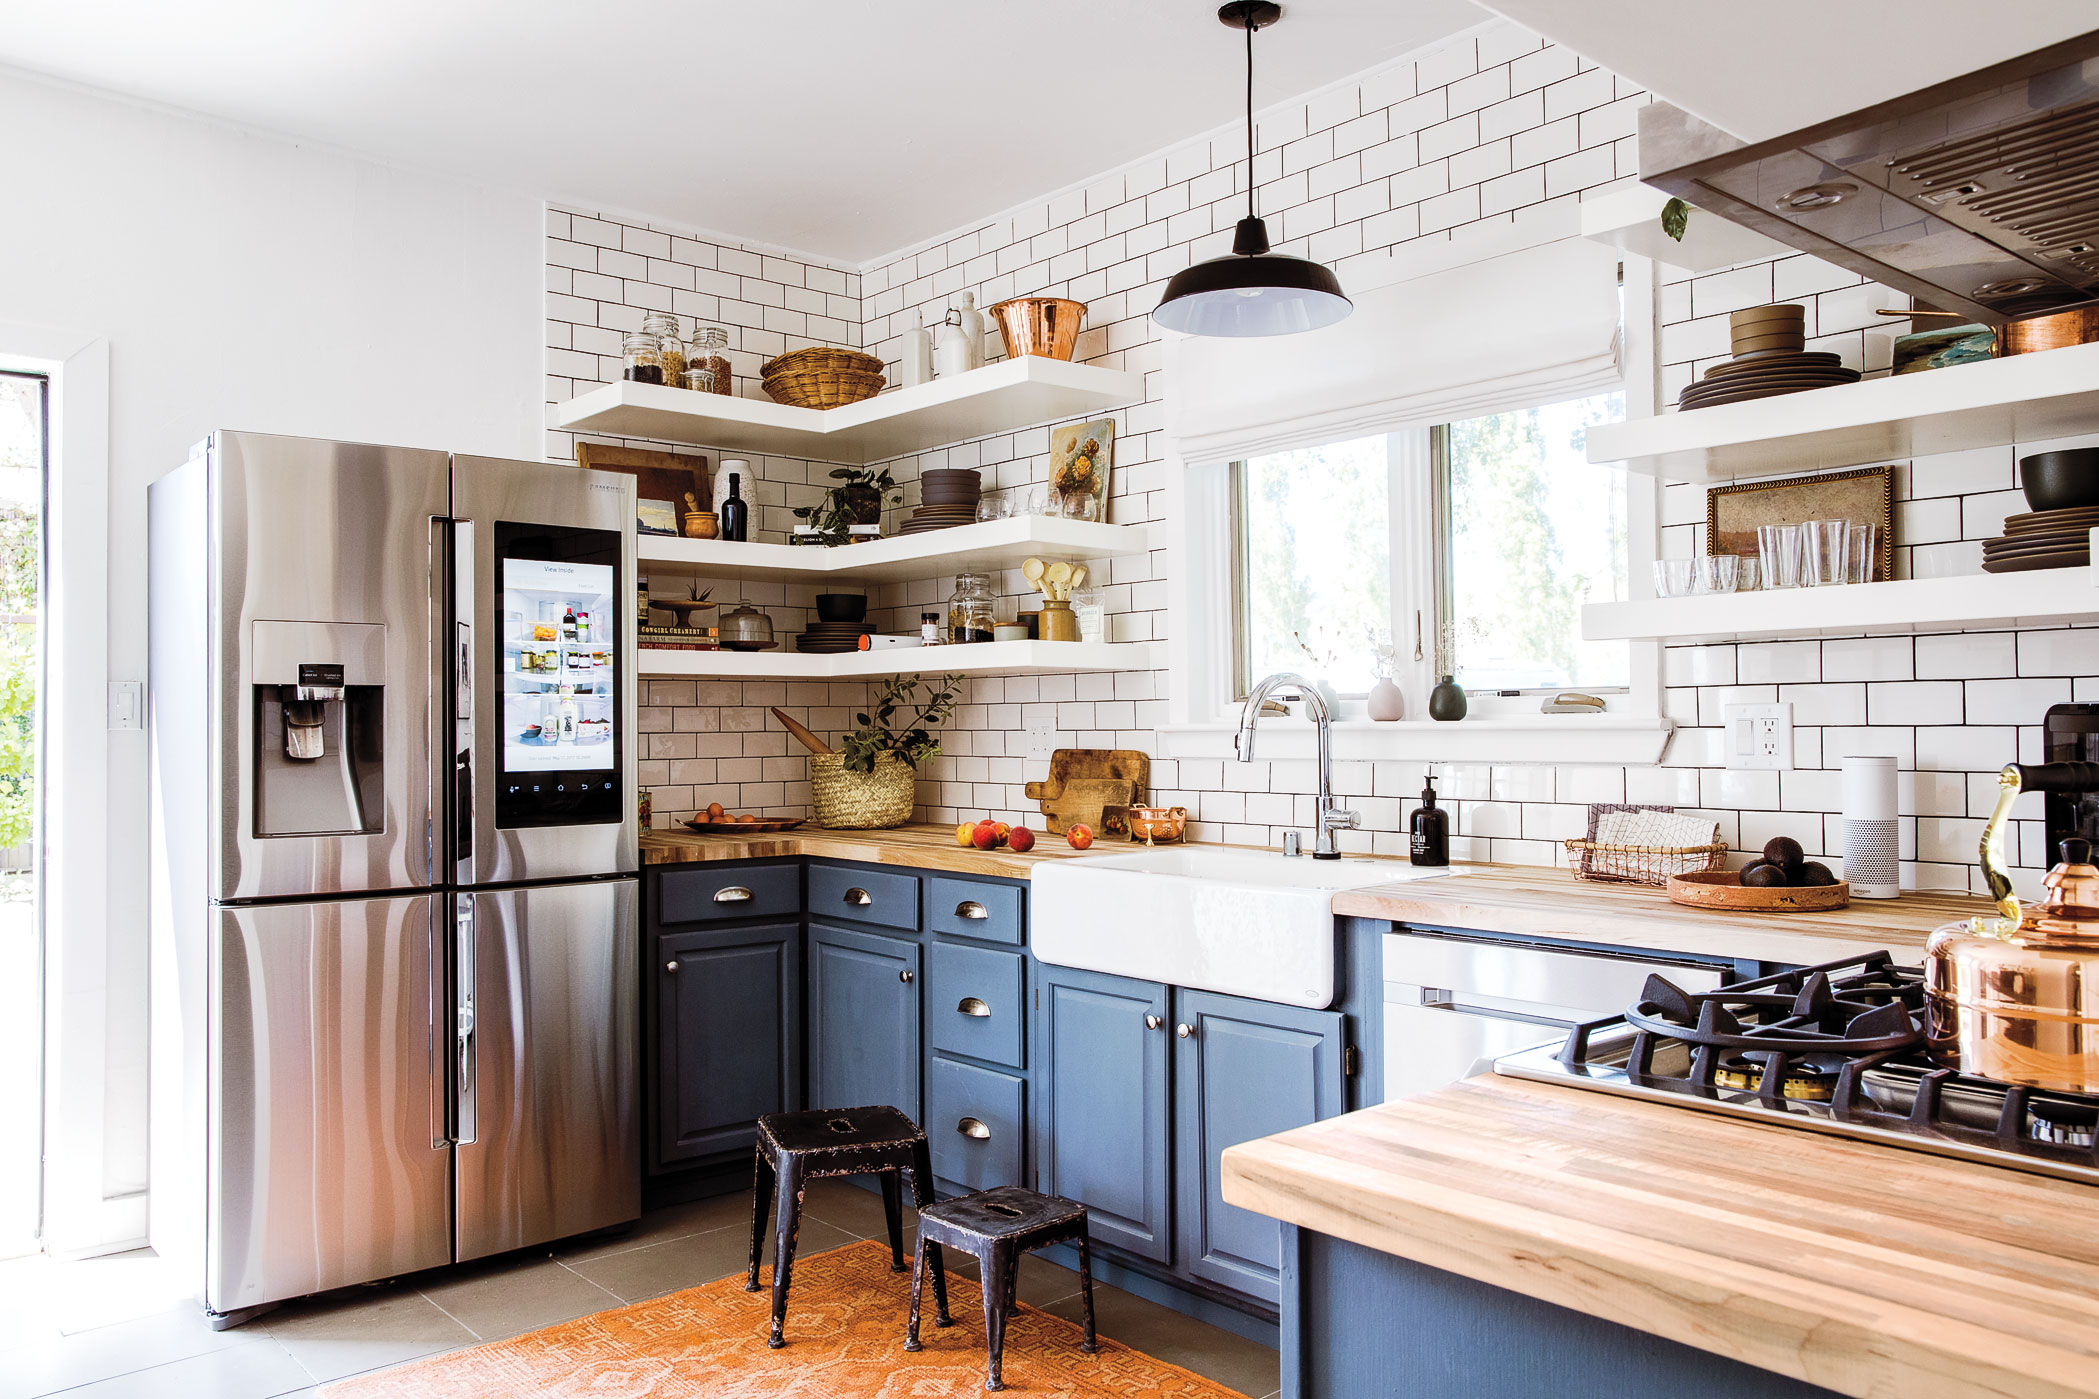 Sunset Magazine Kitchen Design Time For An Update Pick Your Favorite Style From Our